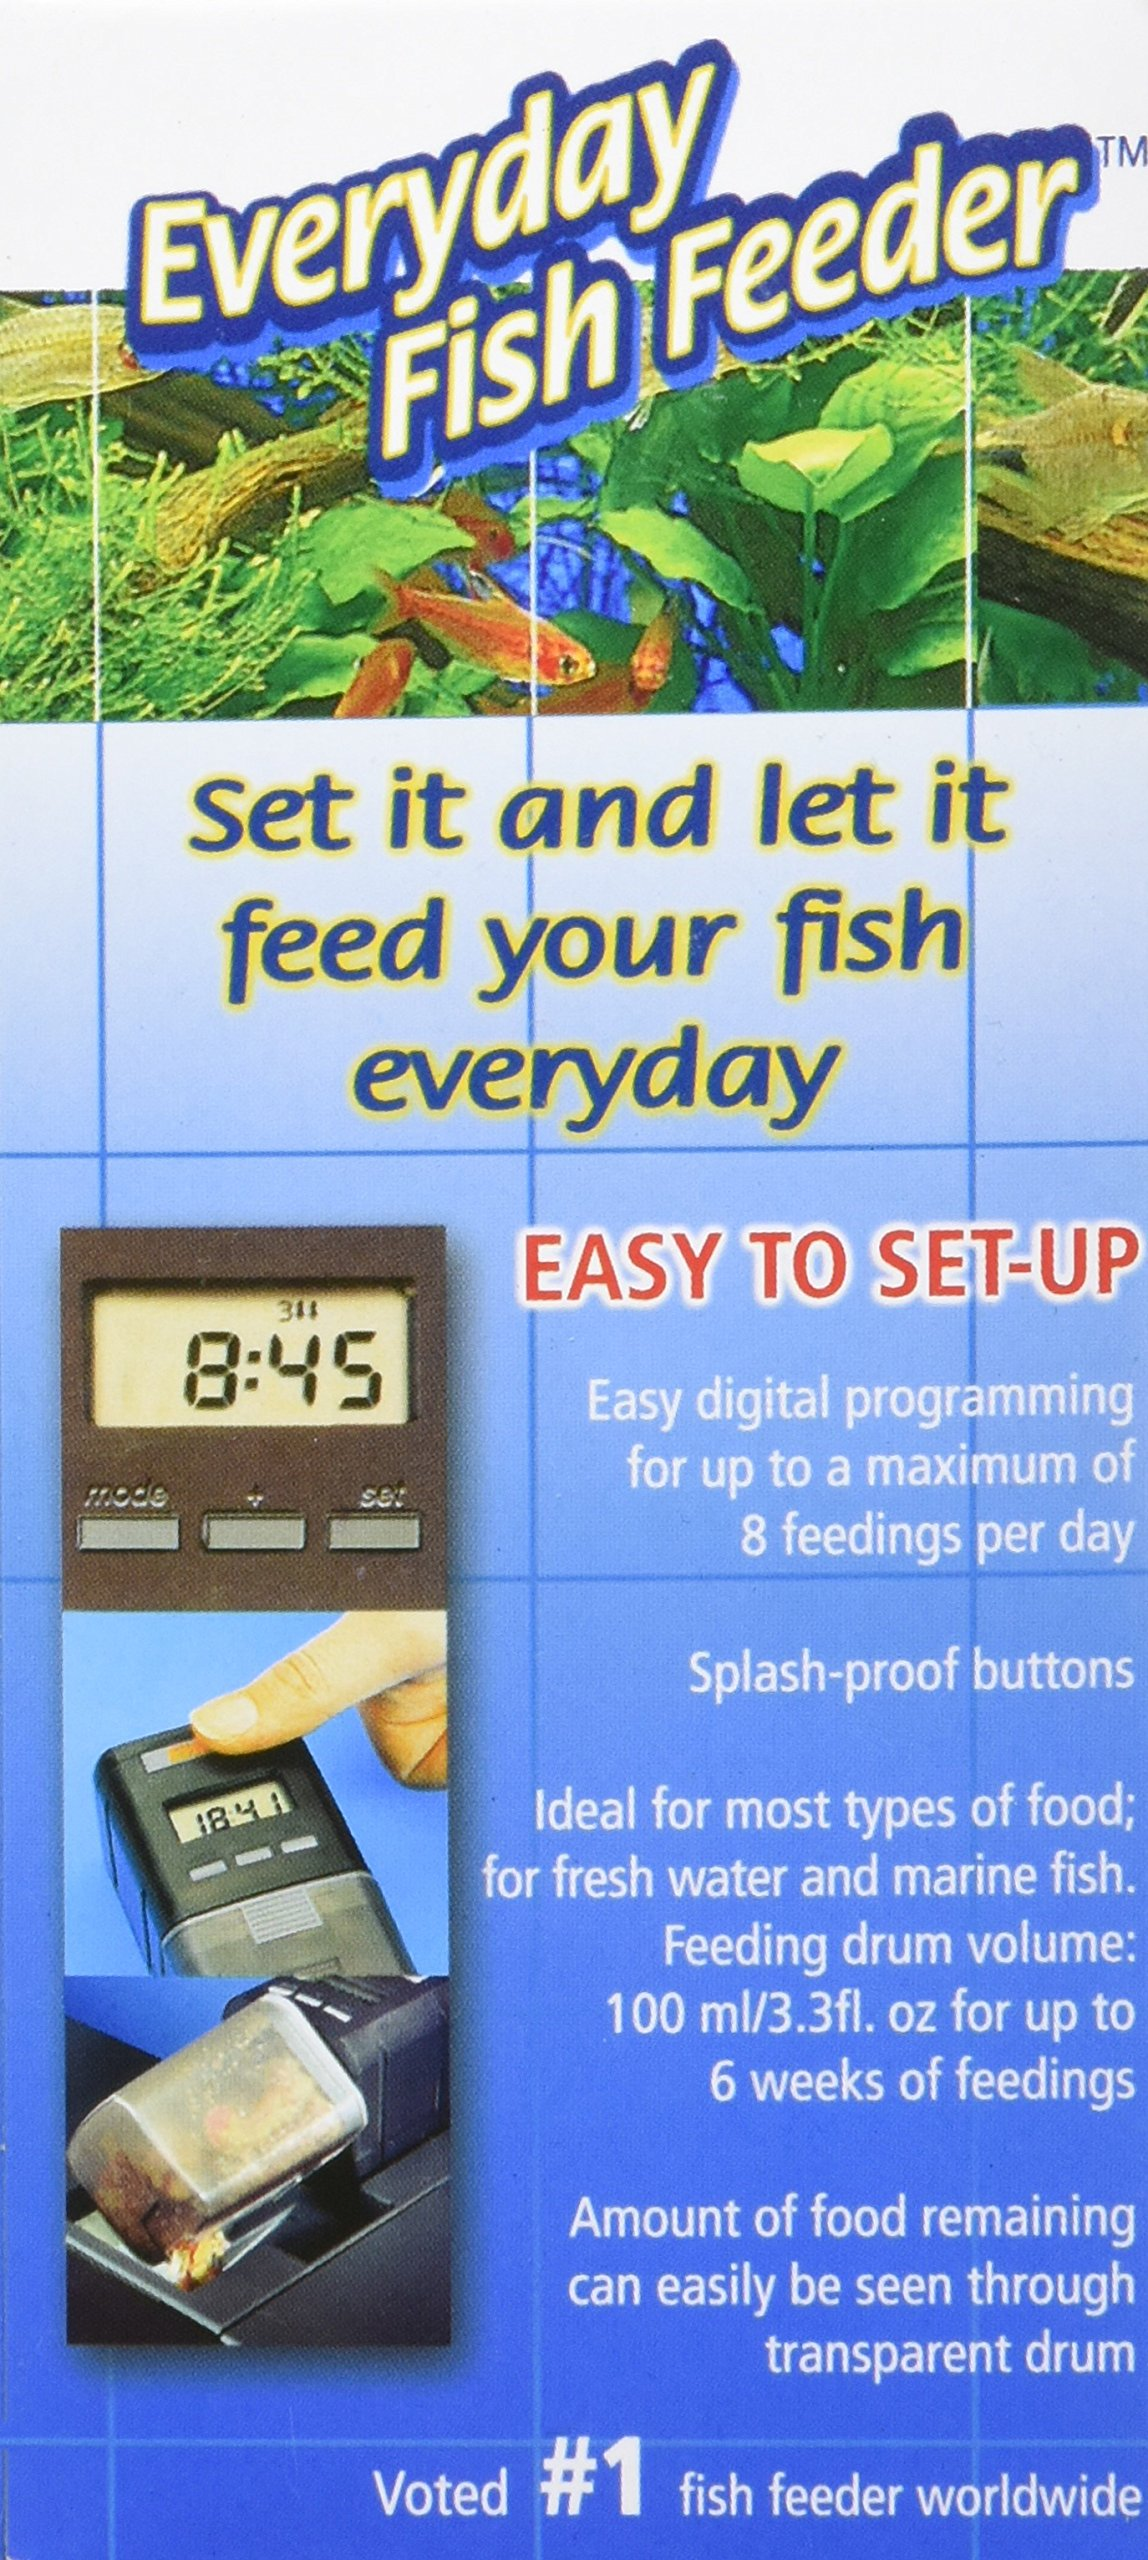 EHEIM Everyday Fish Feeder Programmable Automatic Food Dispenser by Eheim